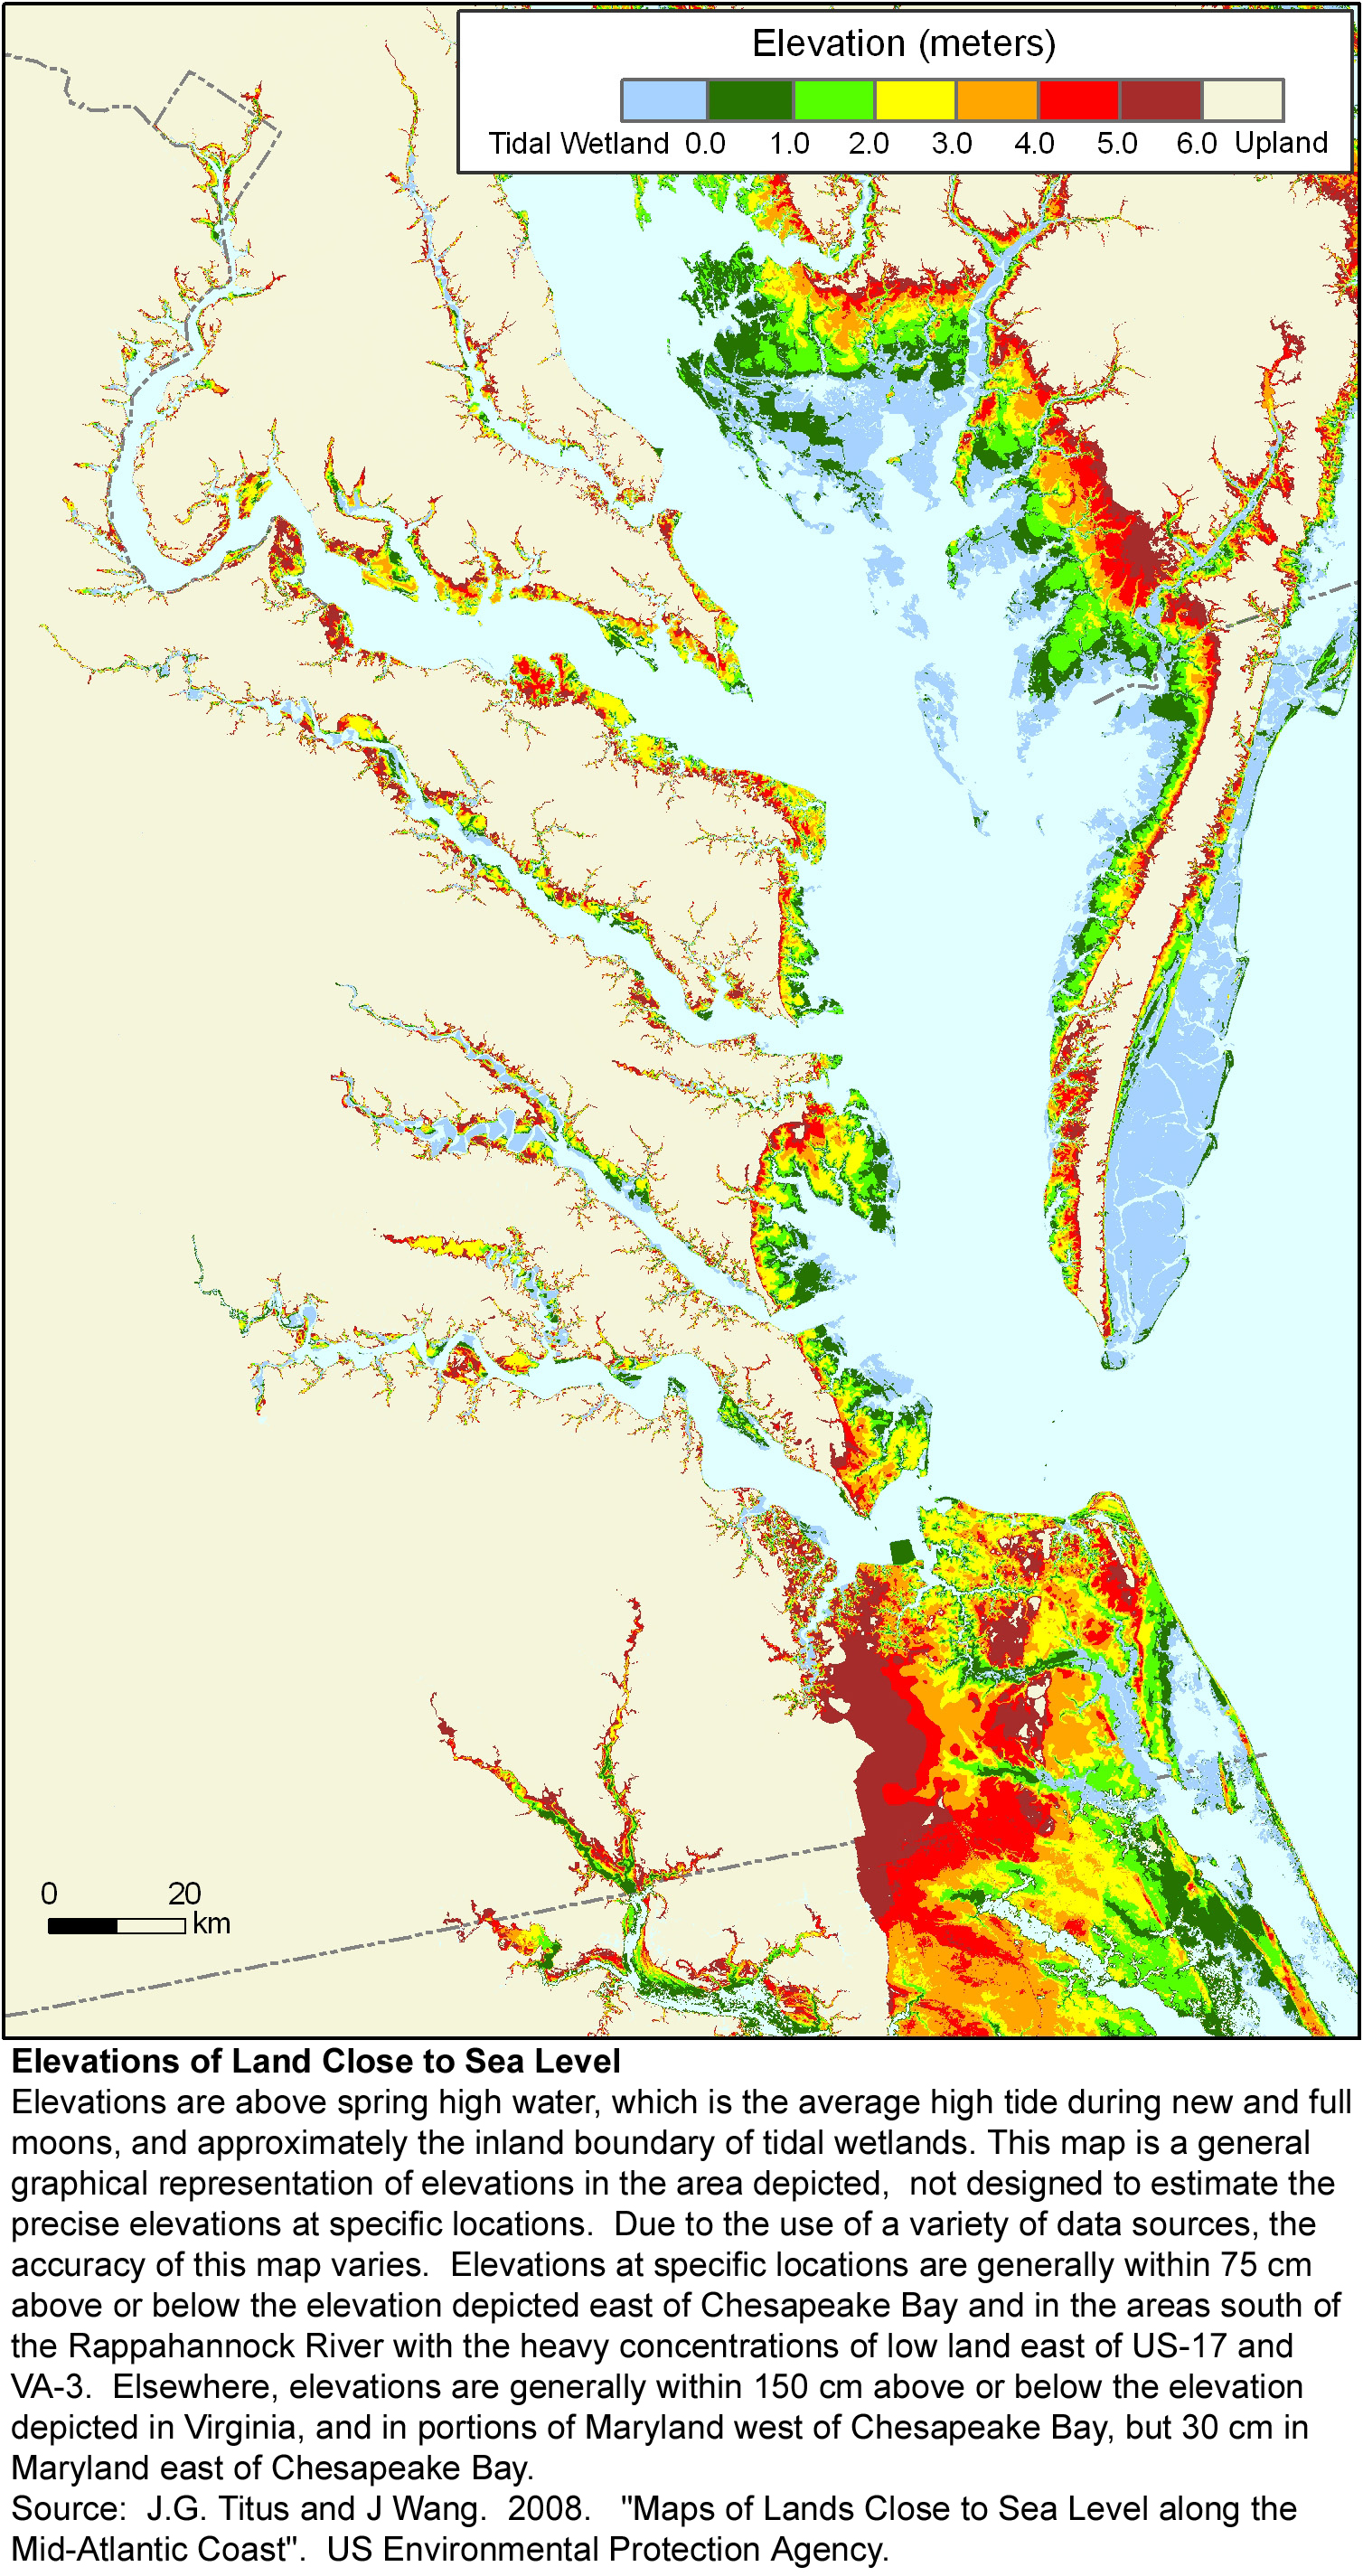 sea level rise elevation map of Virginia